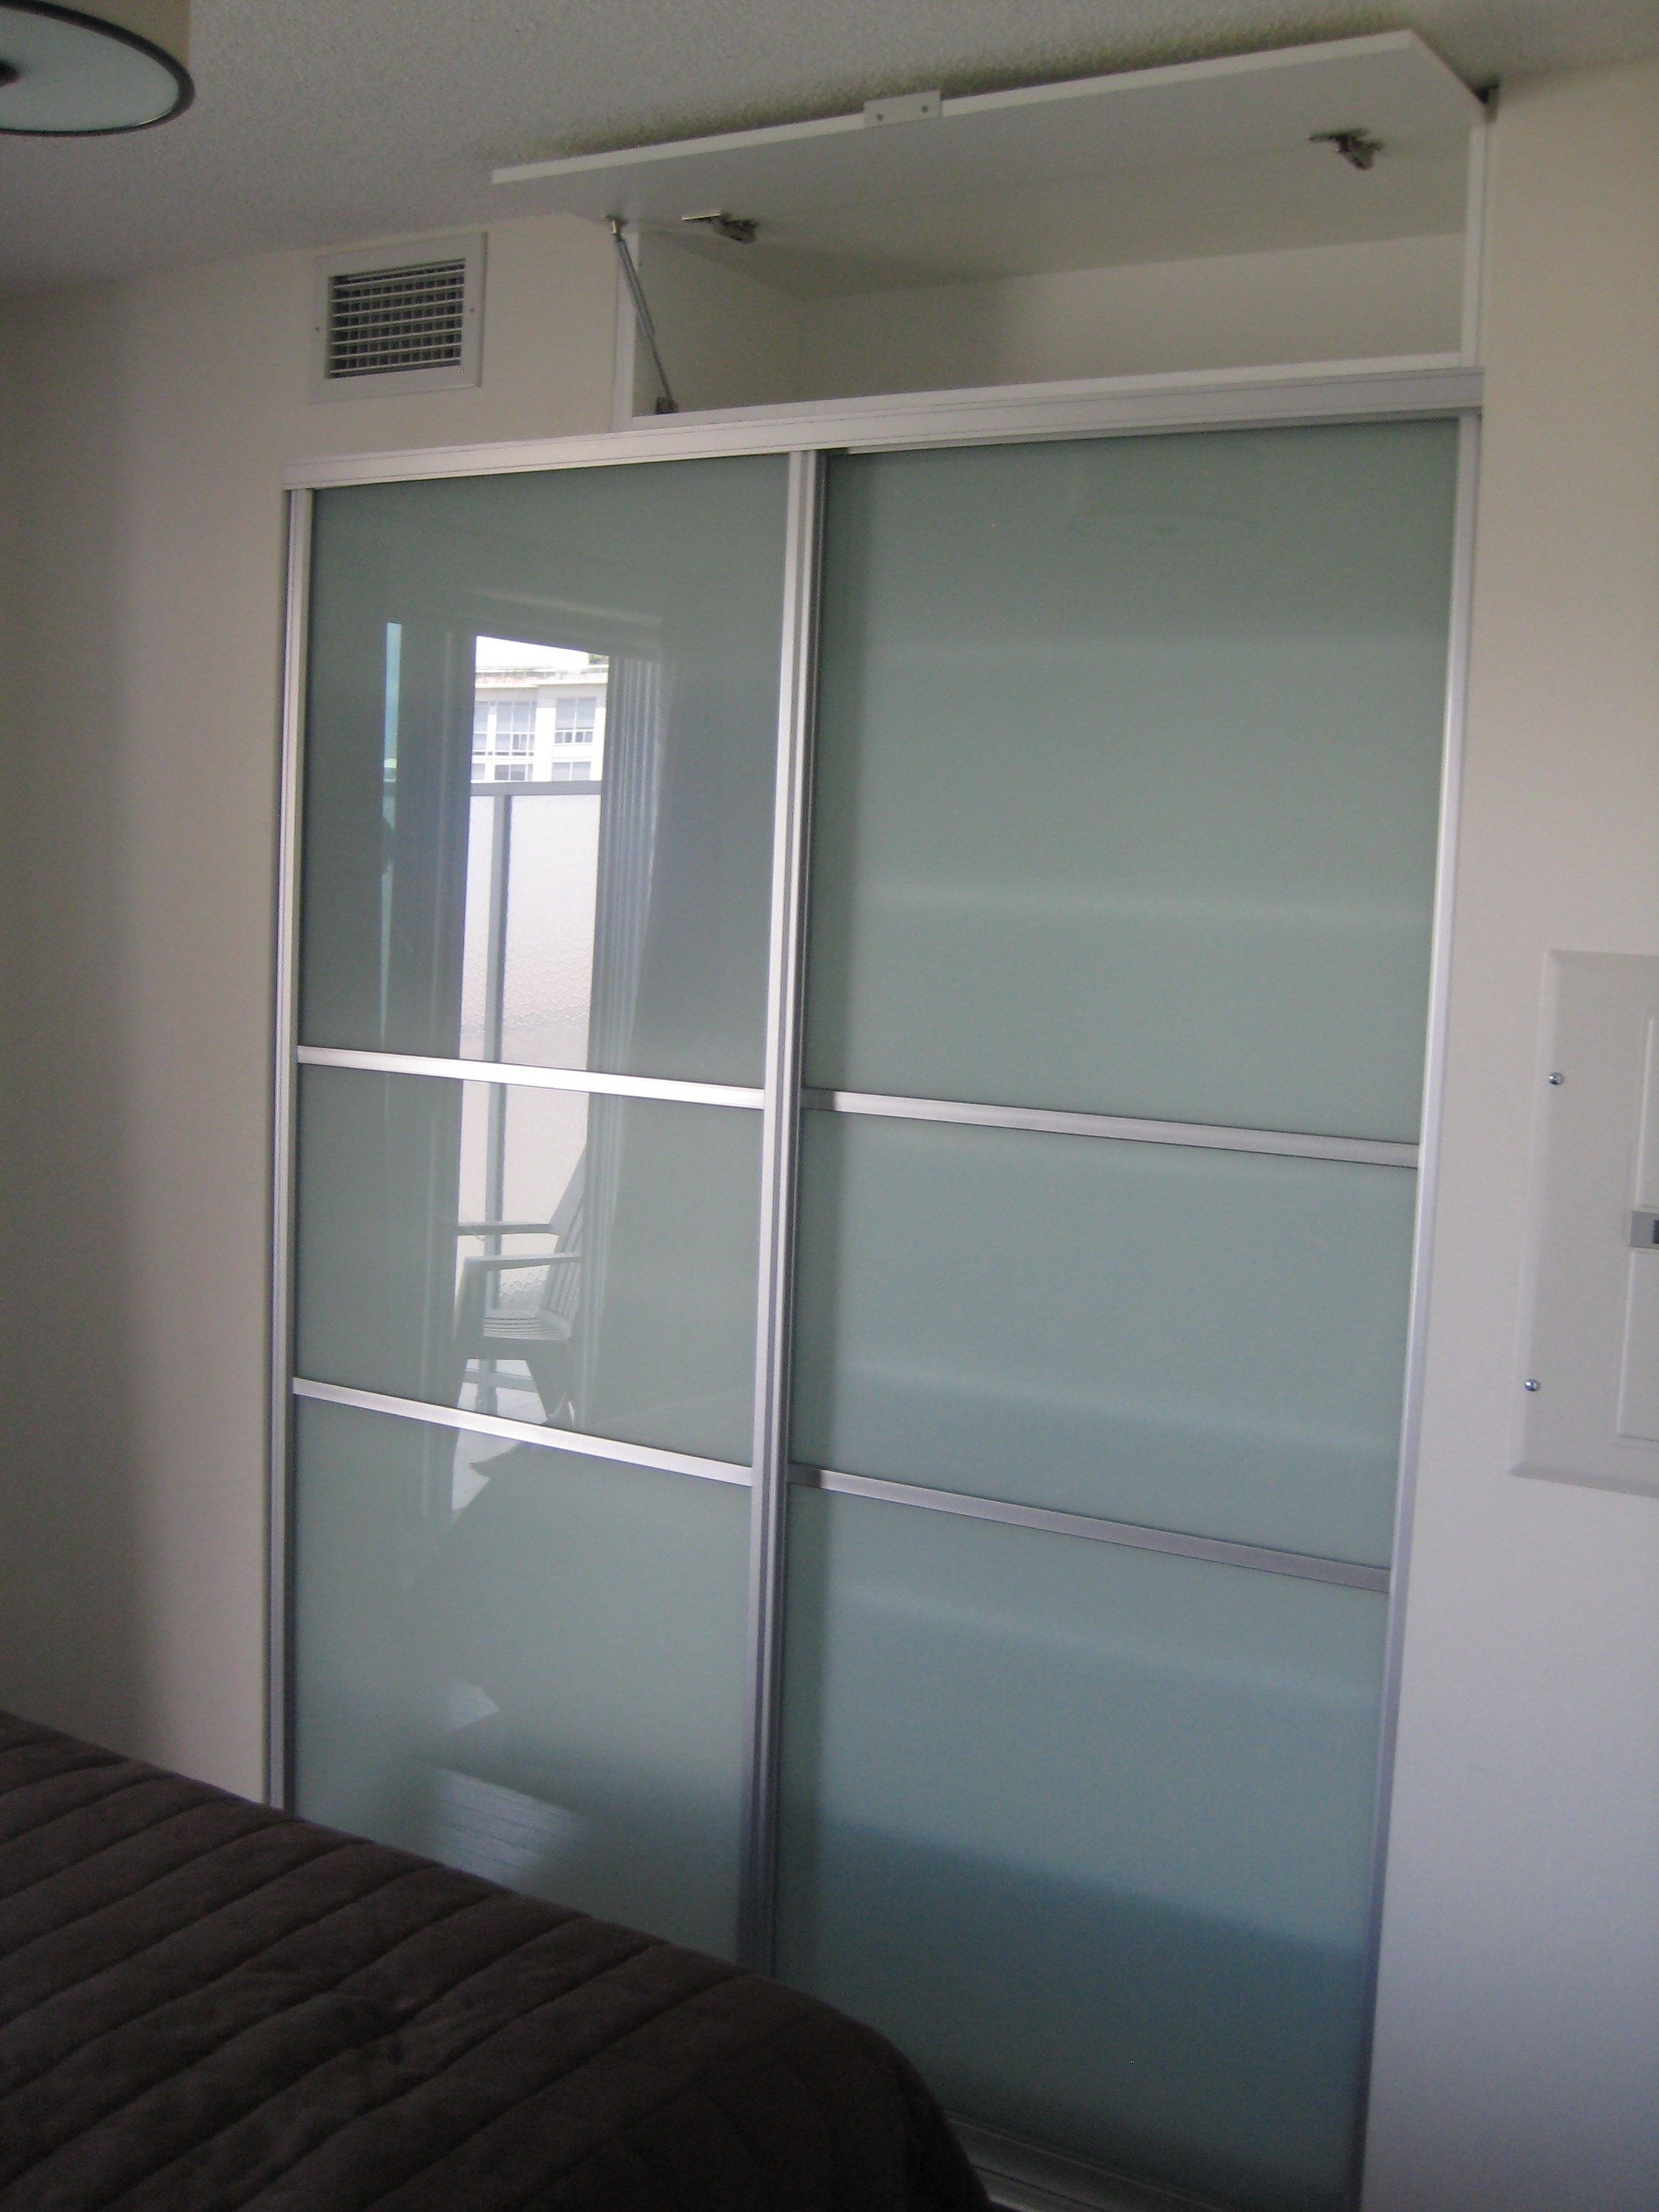 8 foot closet doors sliding 8 foot closet doors sliding for 8 foot sliding glass door